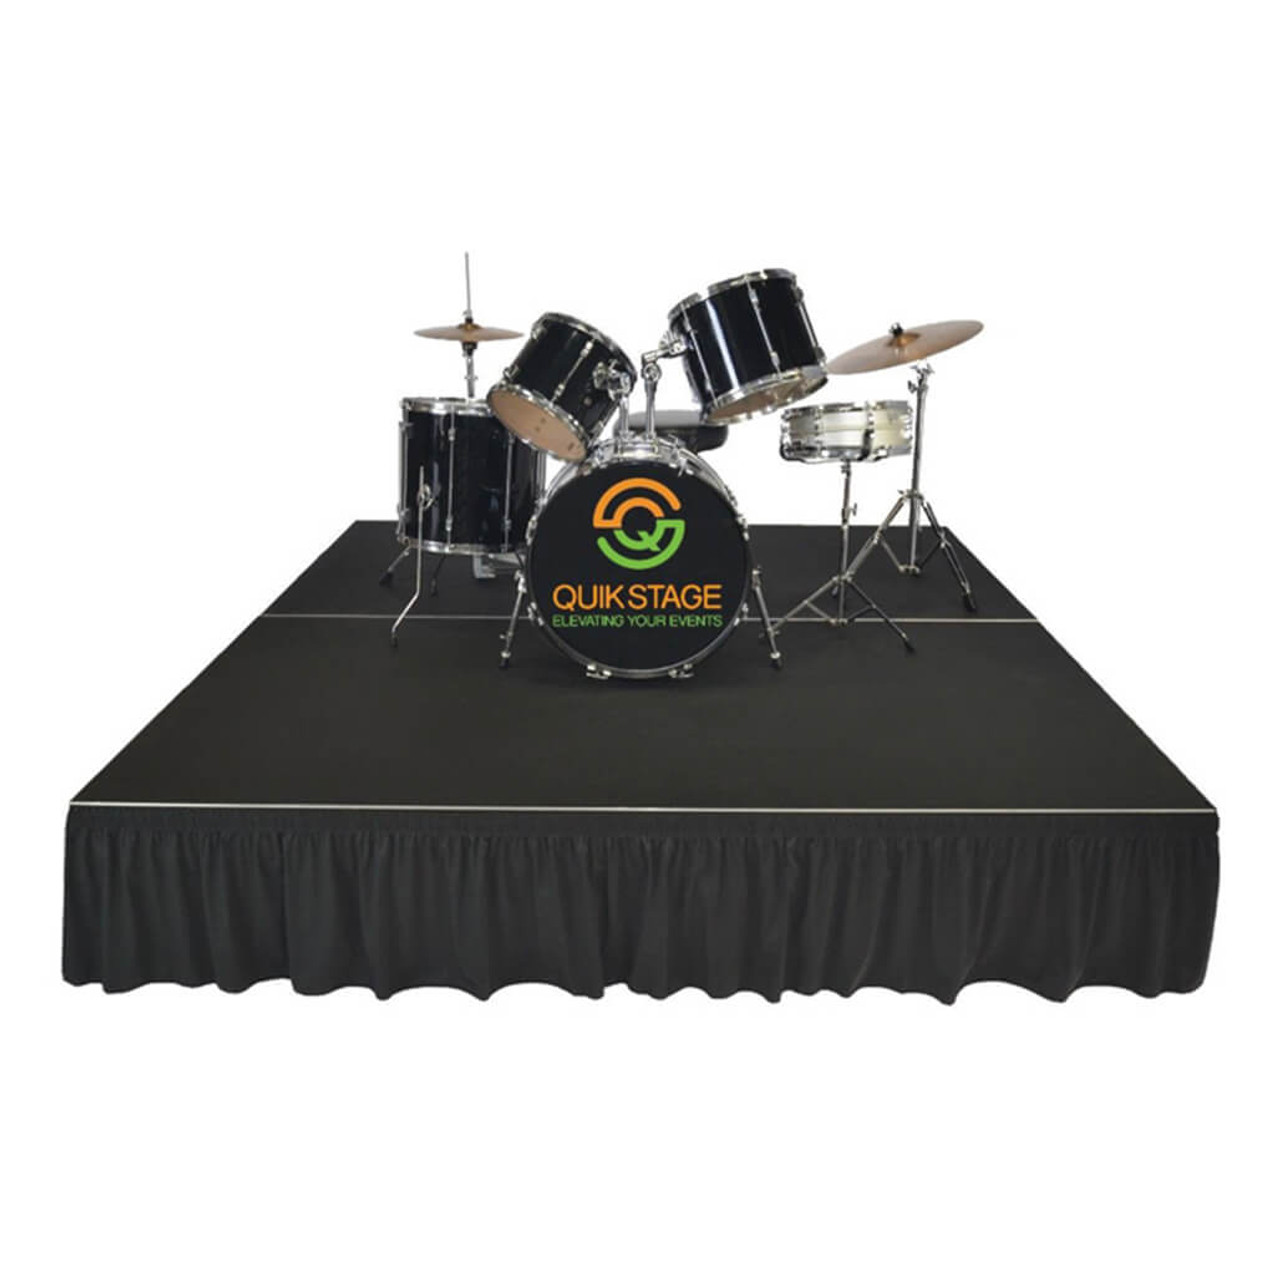 Top reviewed Quik Stage 12' x 16' High Portable Stage Package with Black Polyvinyl Non-Skid Surface. Additional Heights and Surfaces Available - Drum Riser with skirting